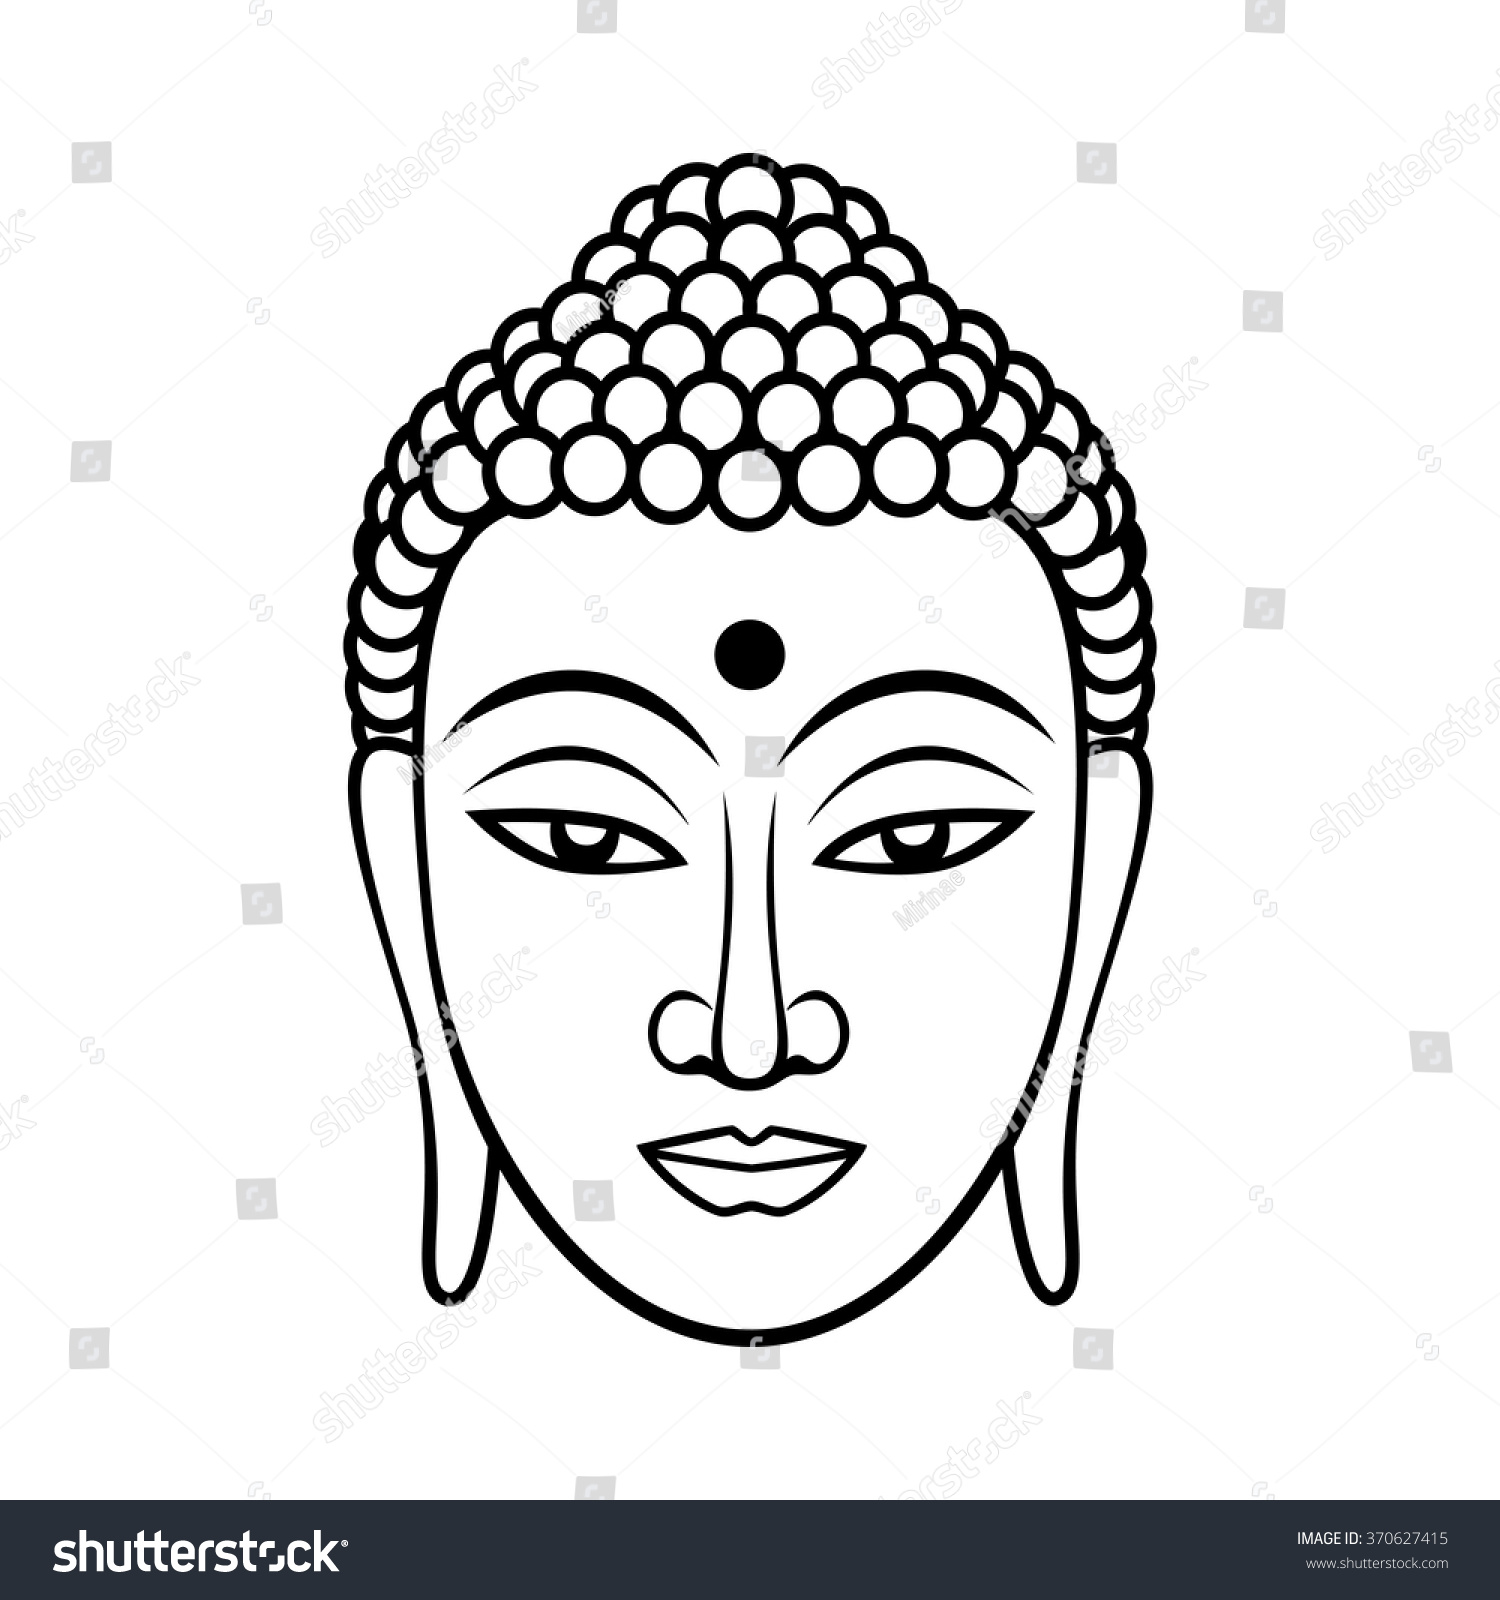 Line Drawing Face Vector : Buddha face black line illustration on vectores en stock